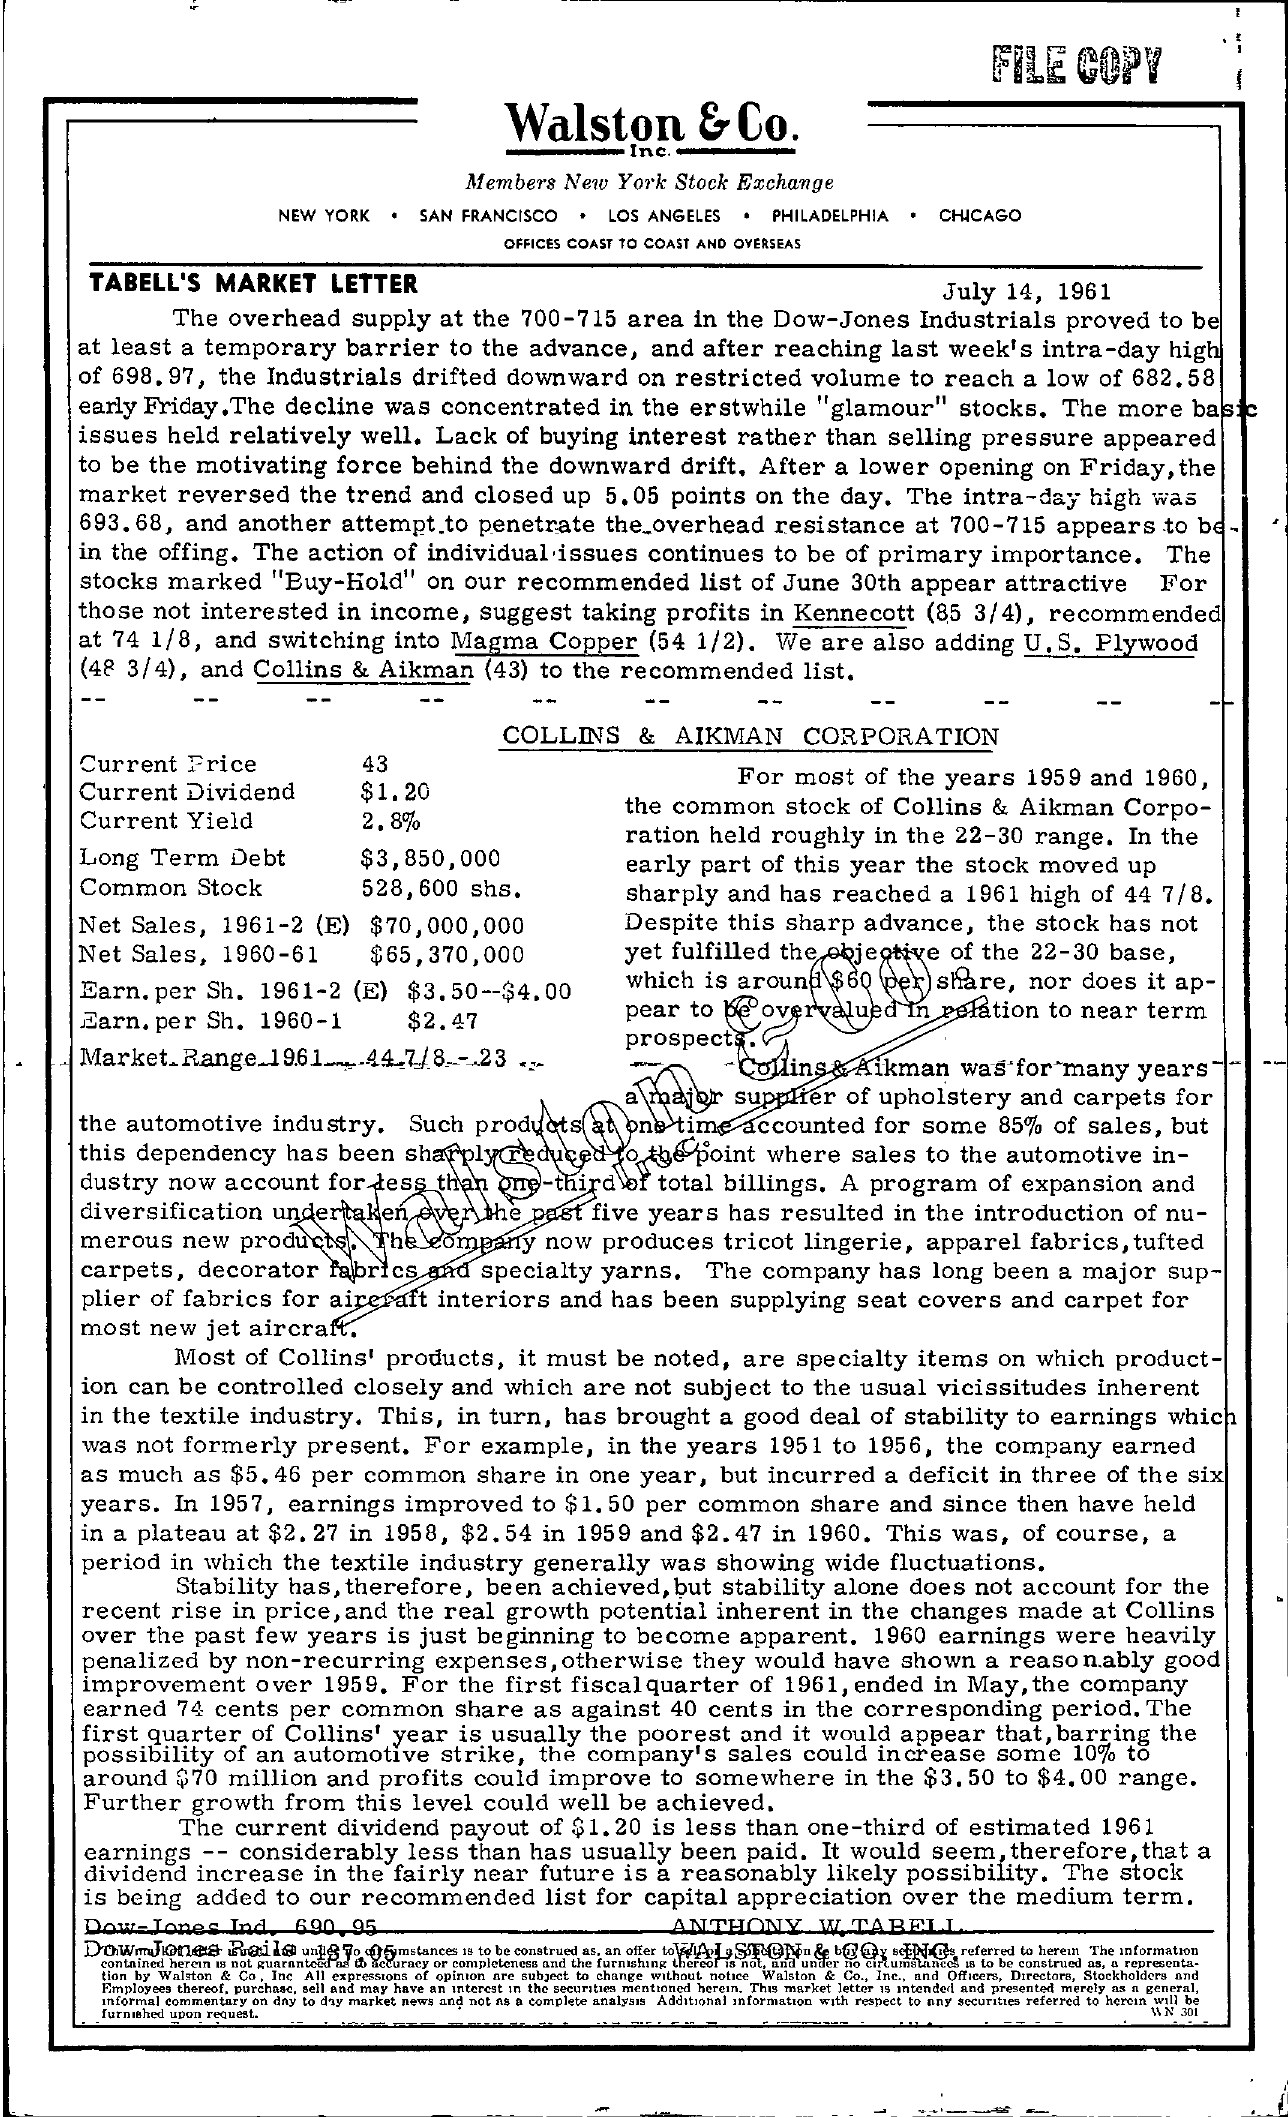 Tabell's Market Letter - July 14, 1961